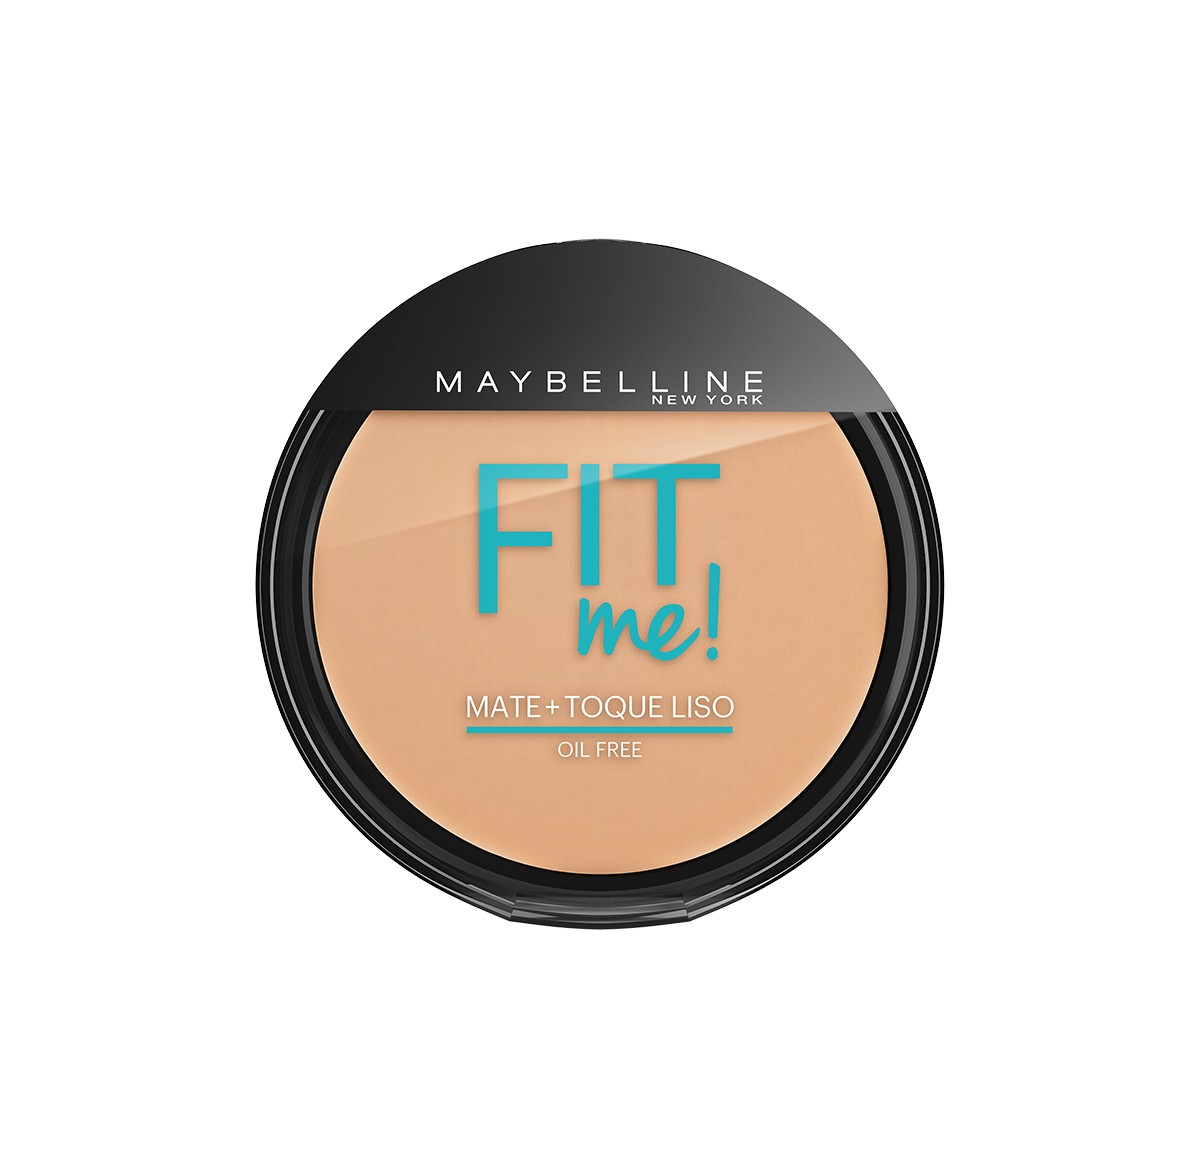 Pó Compacto Maybelline Fit Me N°140 Claro Singular Maybelline 1 Unidade - brand